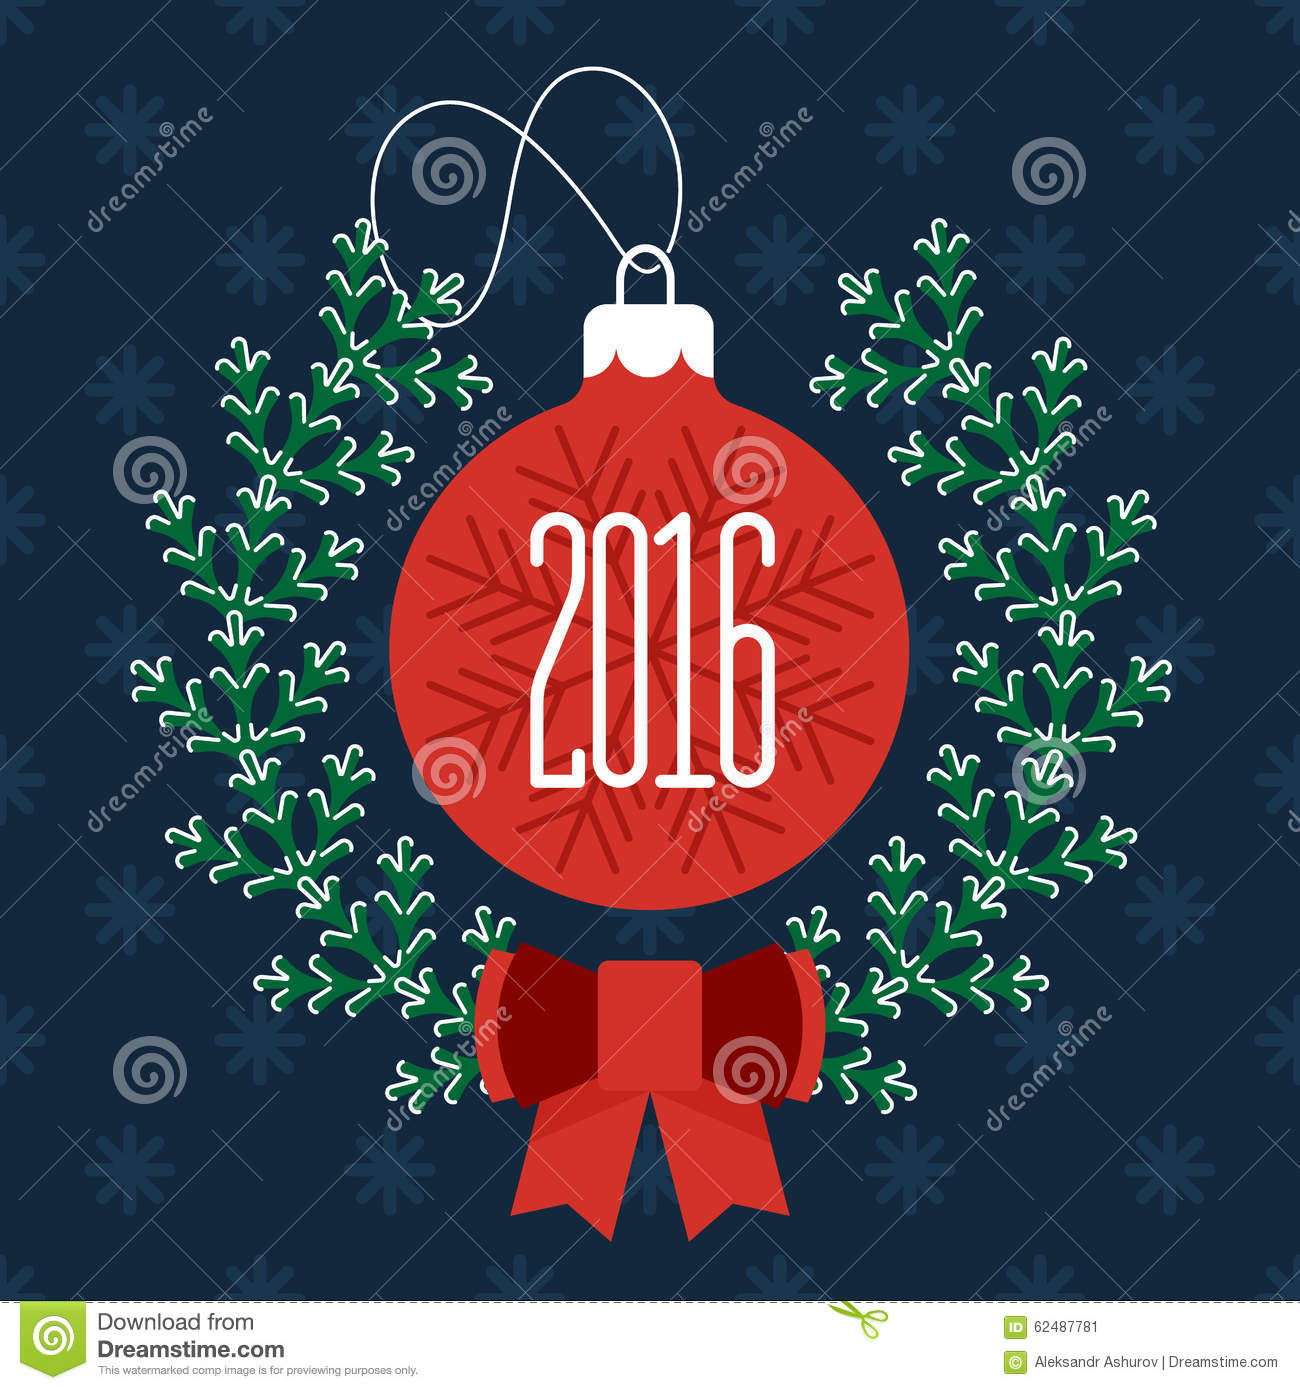 merry christmas and happy new year stock vector image  merry christmas and happy new year 2016